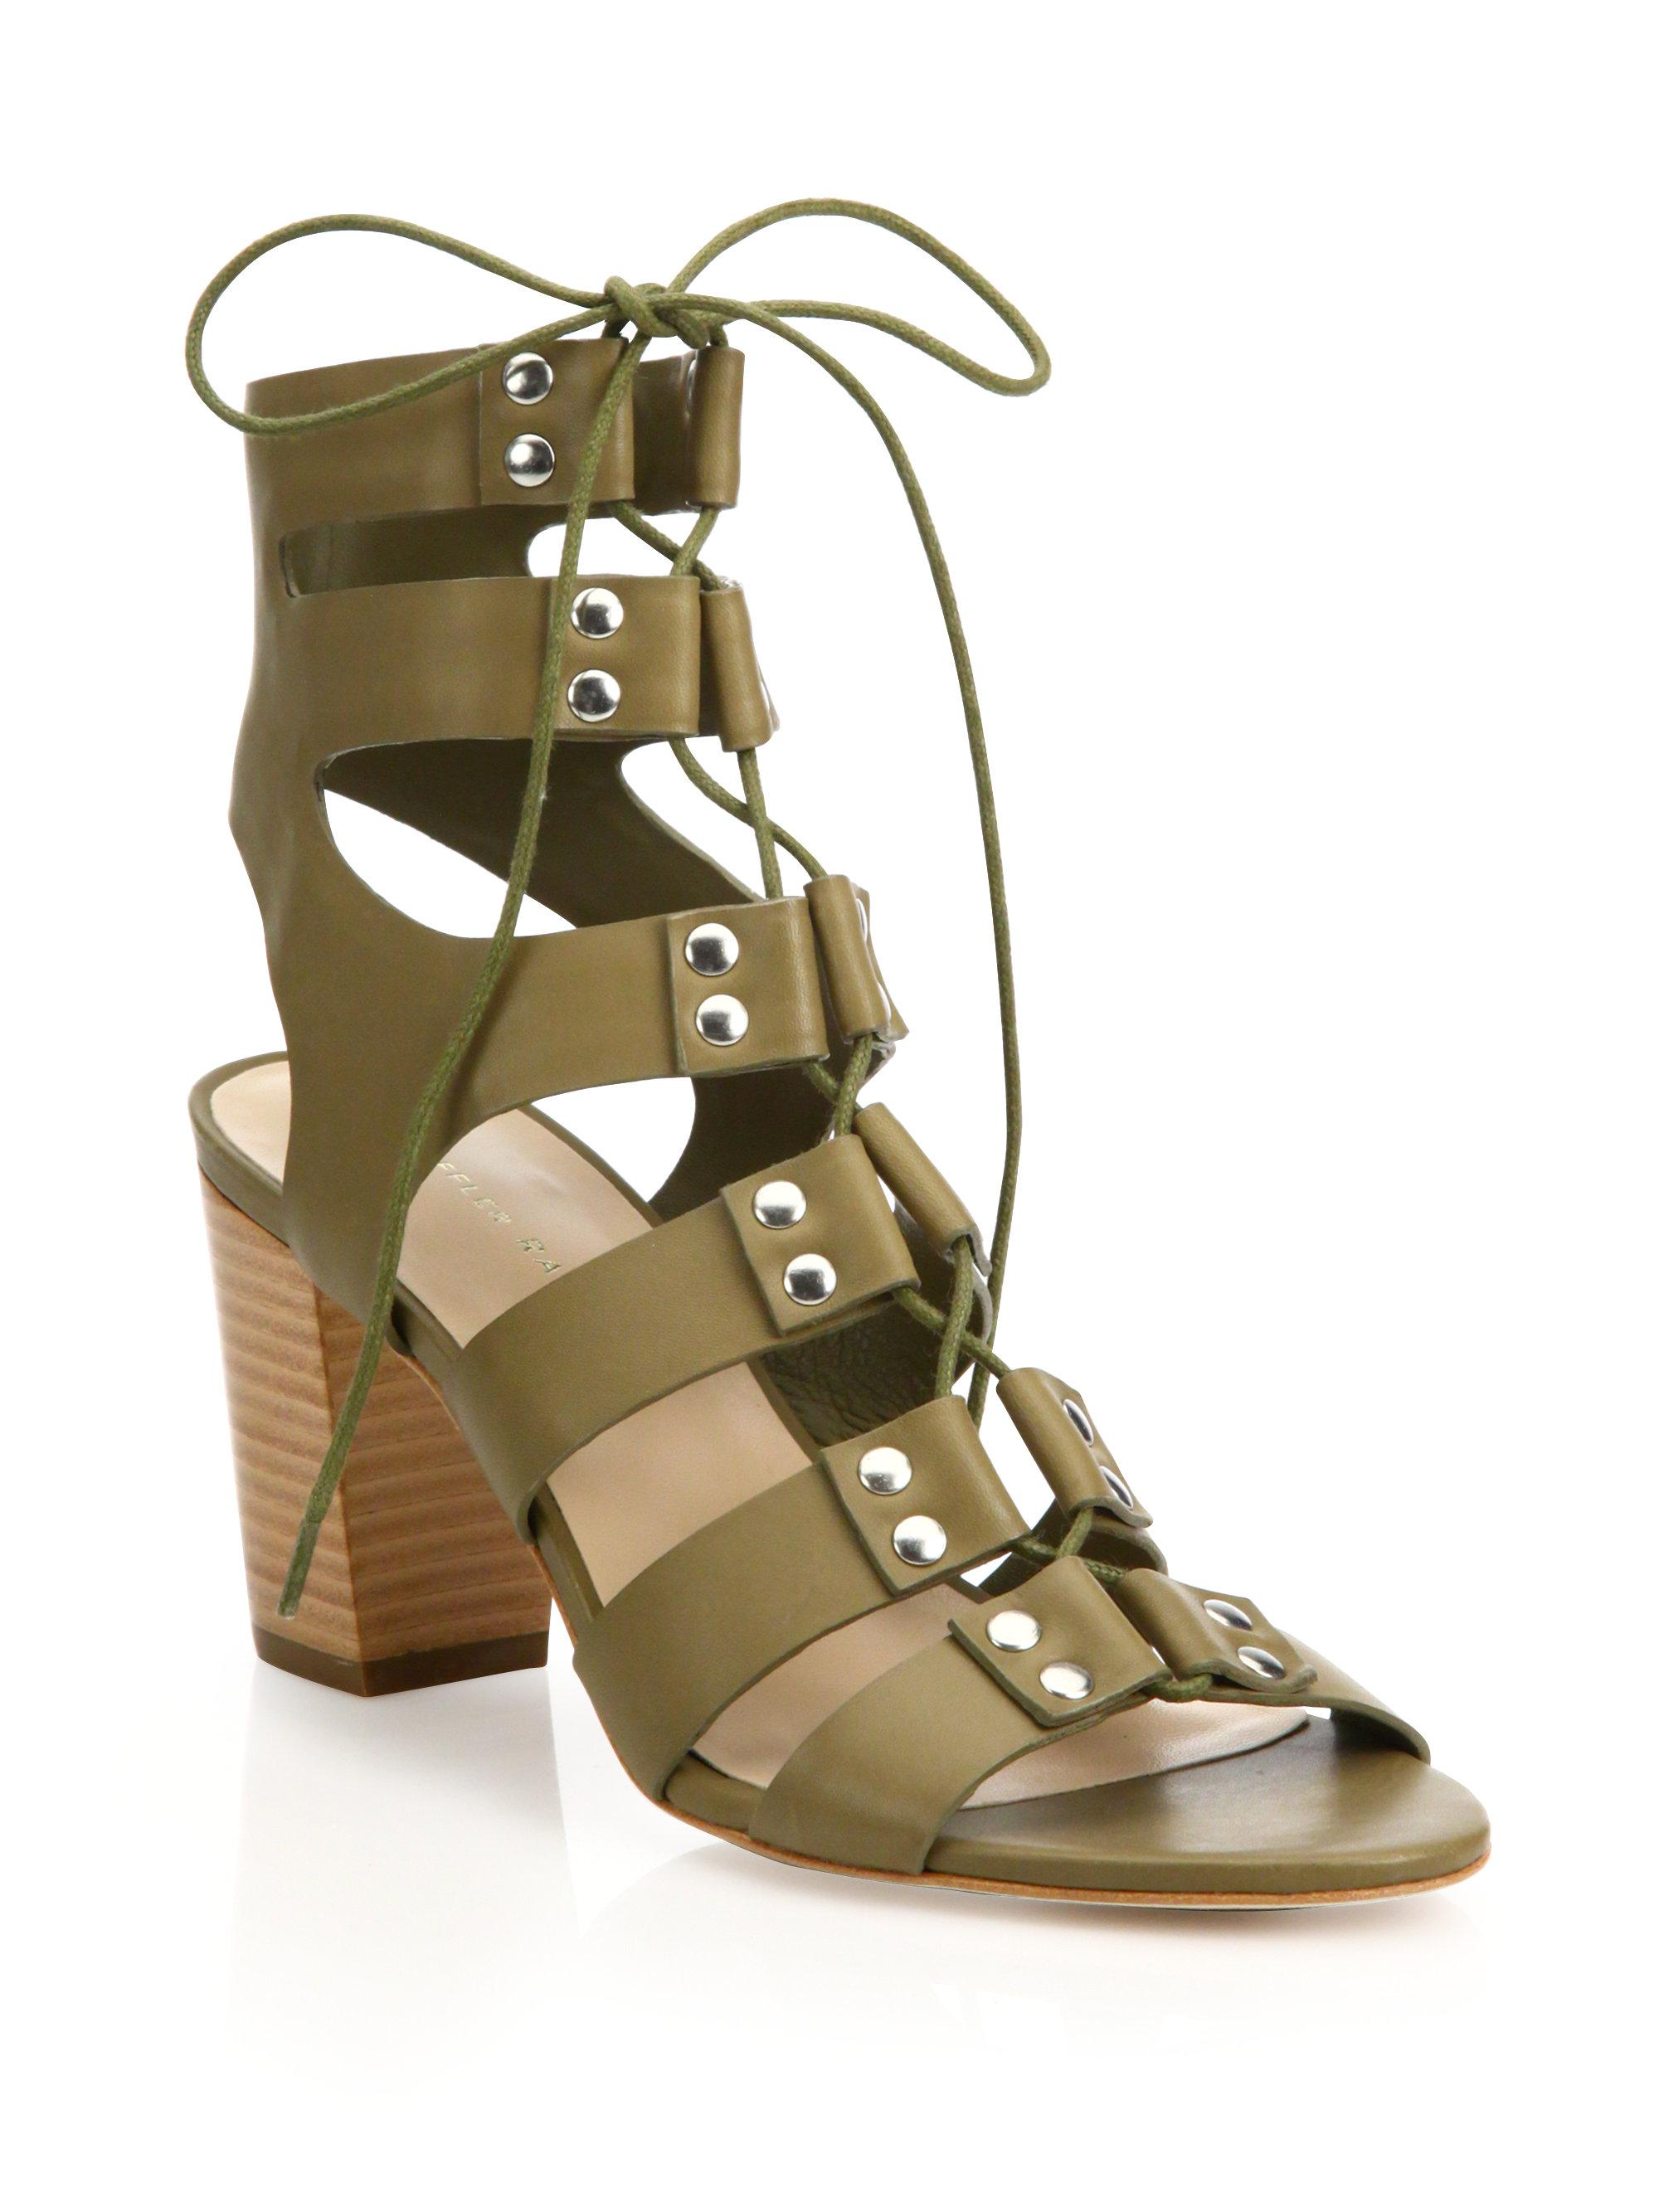 334b0e0344c7 Gallery. Previously sold at  Saks Fifth Avenue · Women s Gladiator Sandals